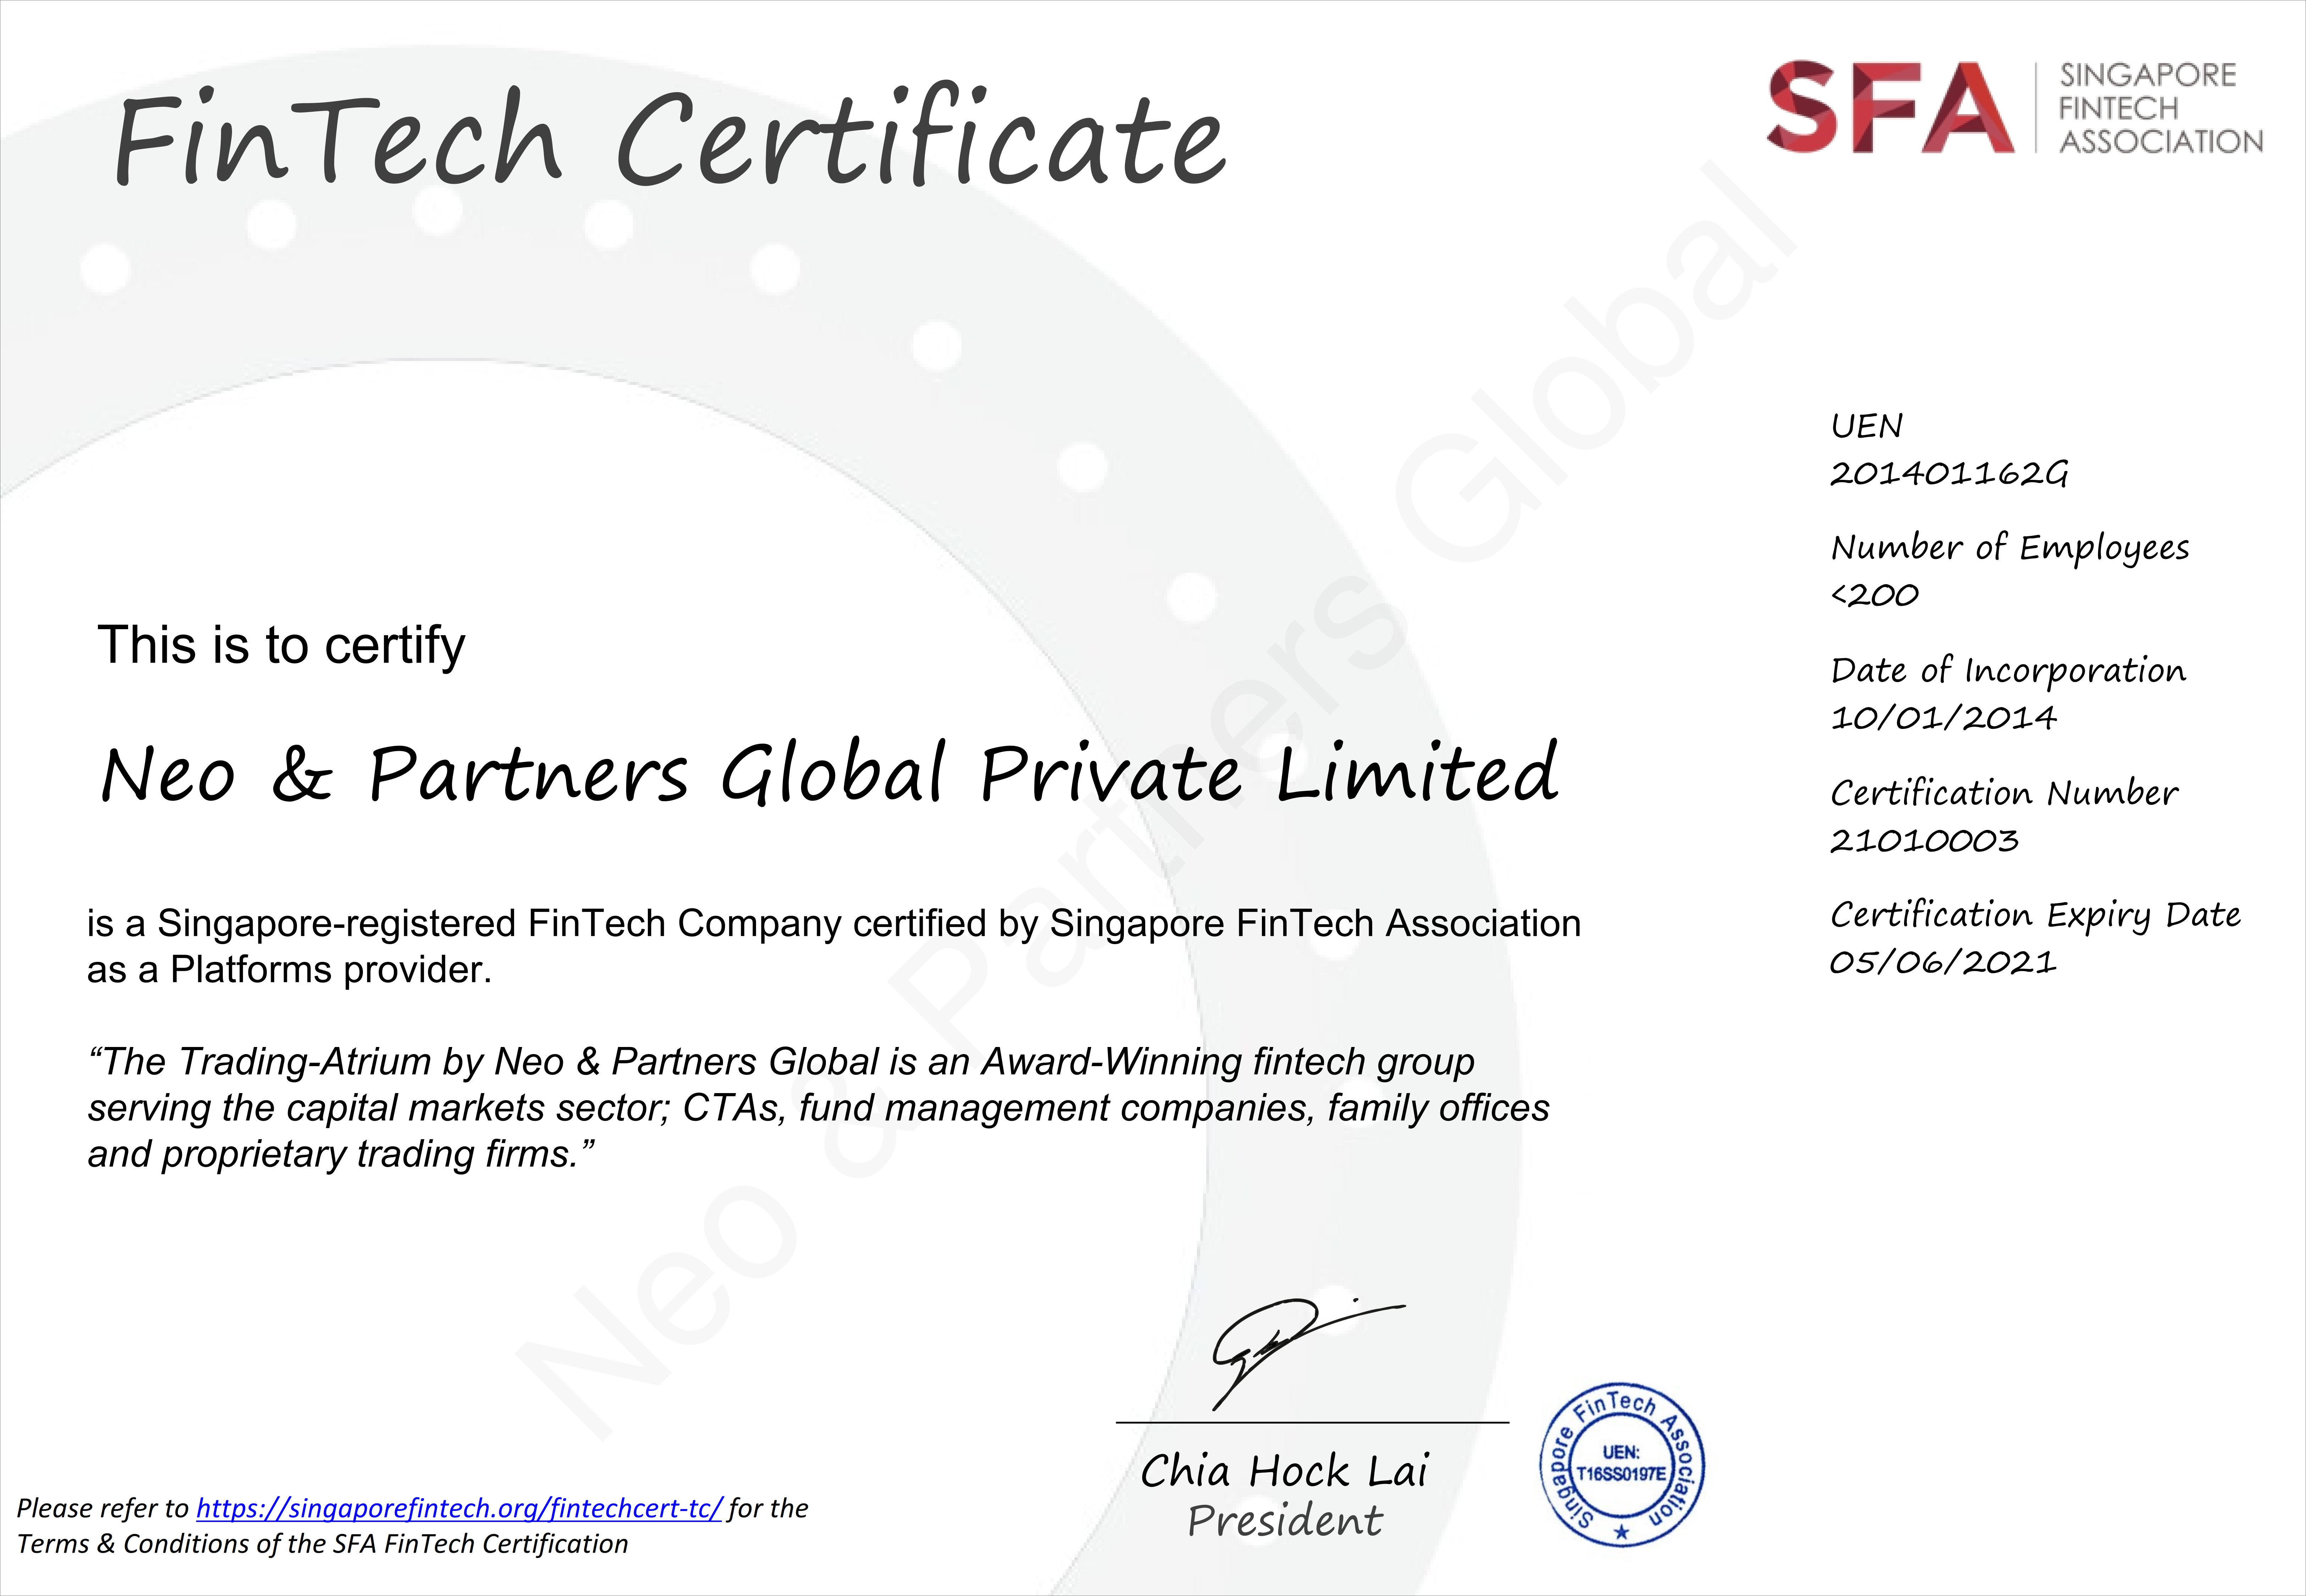 Neo & Partners Global Bags Awarded FinTech Certification, a World's First by the Singapore FinTech Association